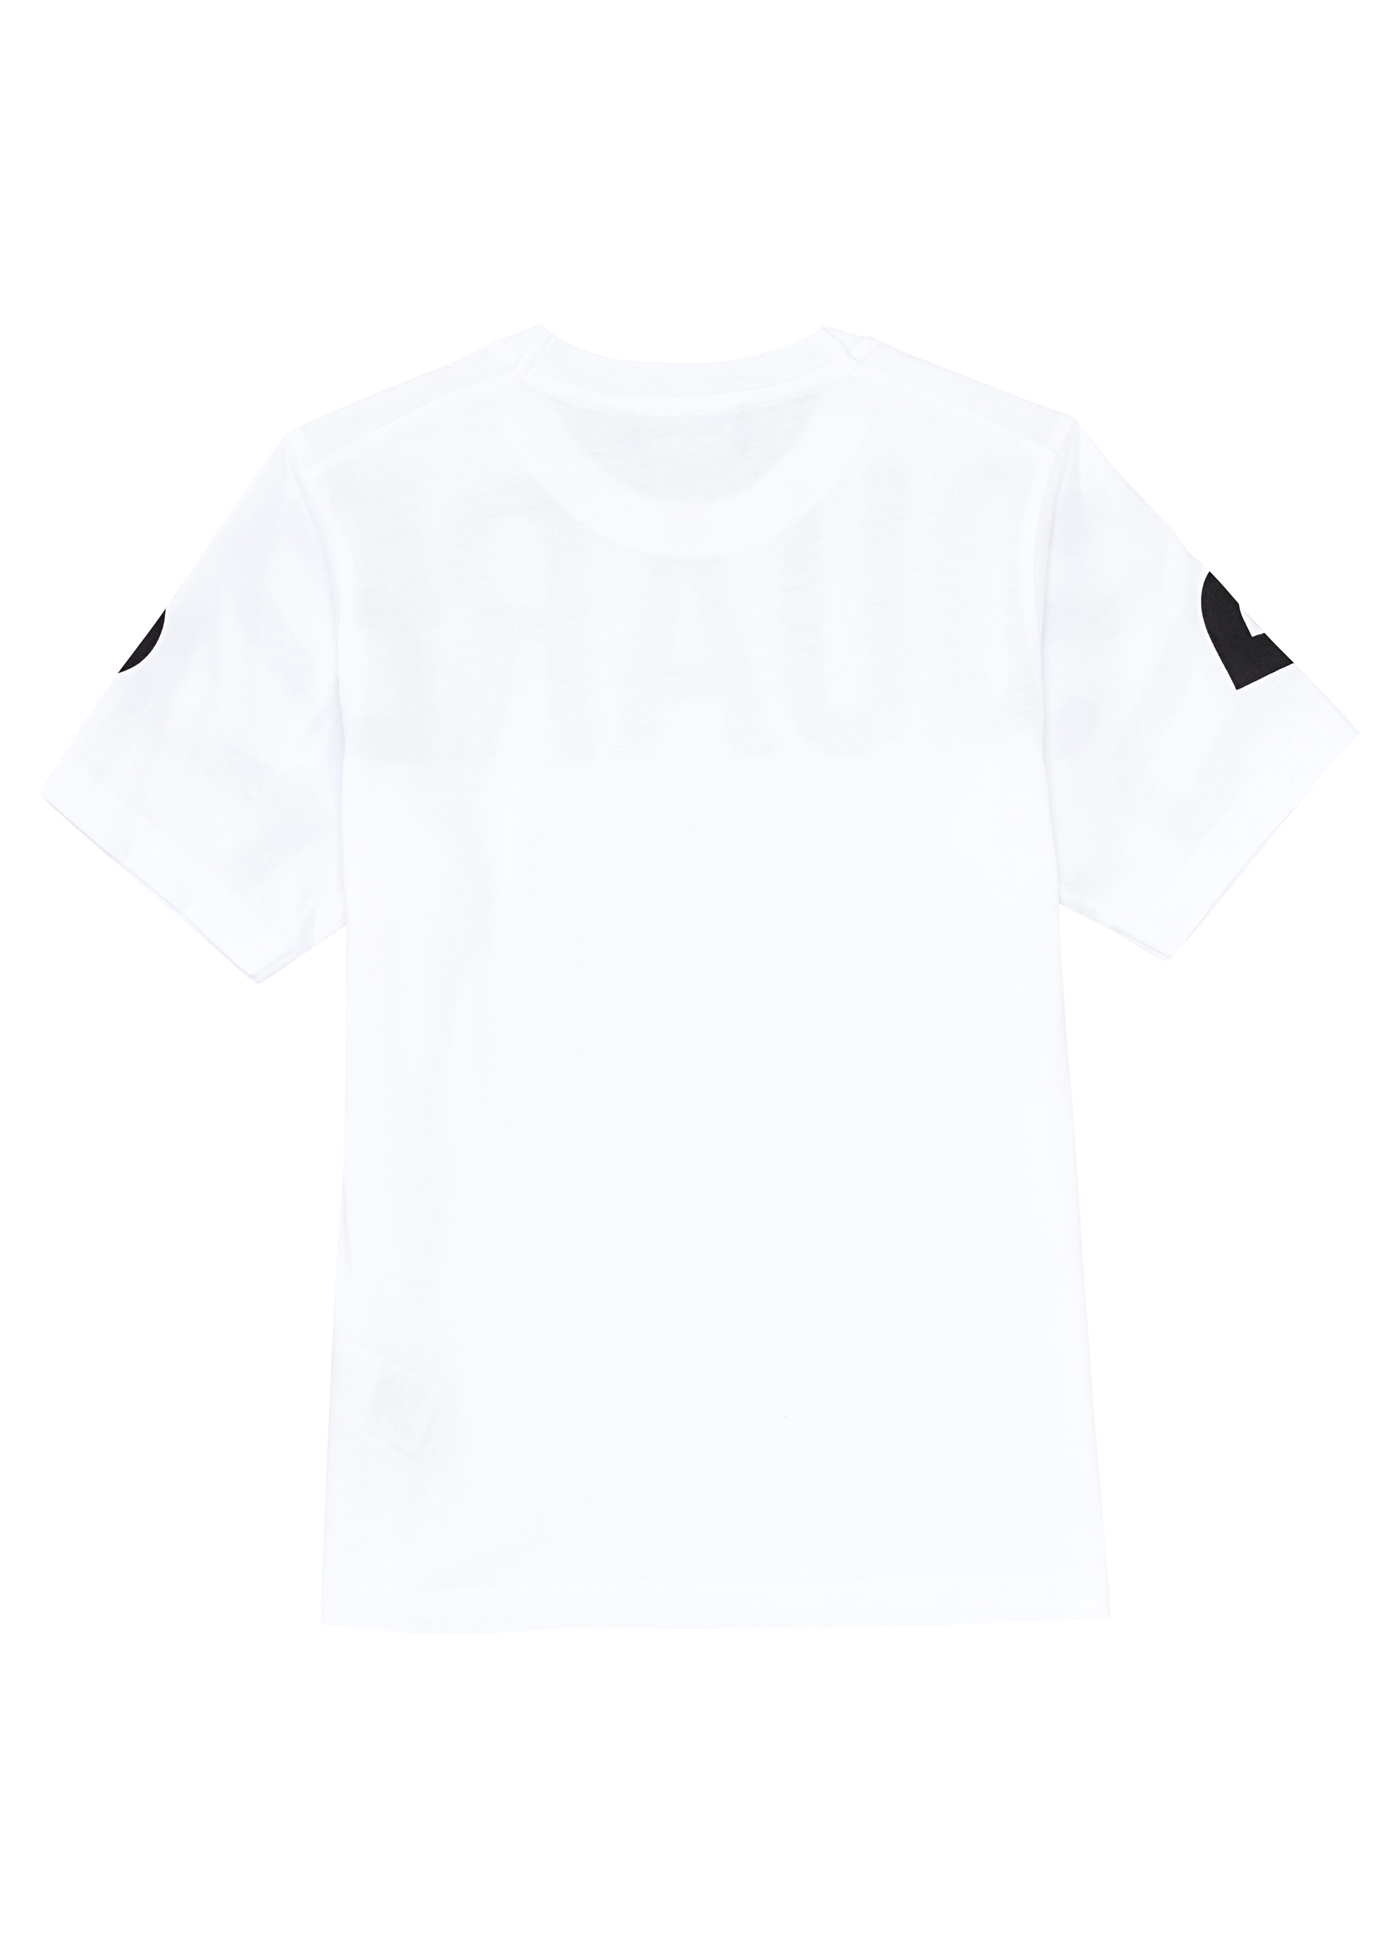 DSQUARED2 Tee image number 1